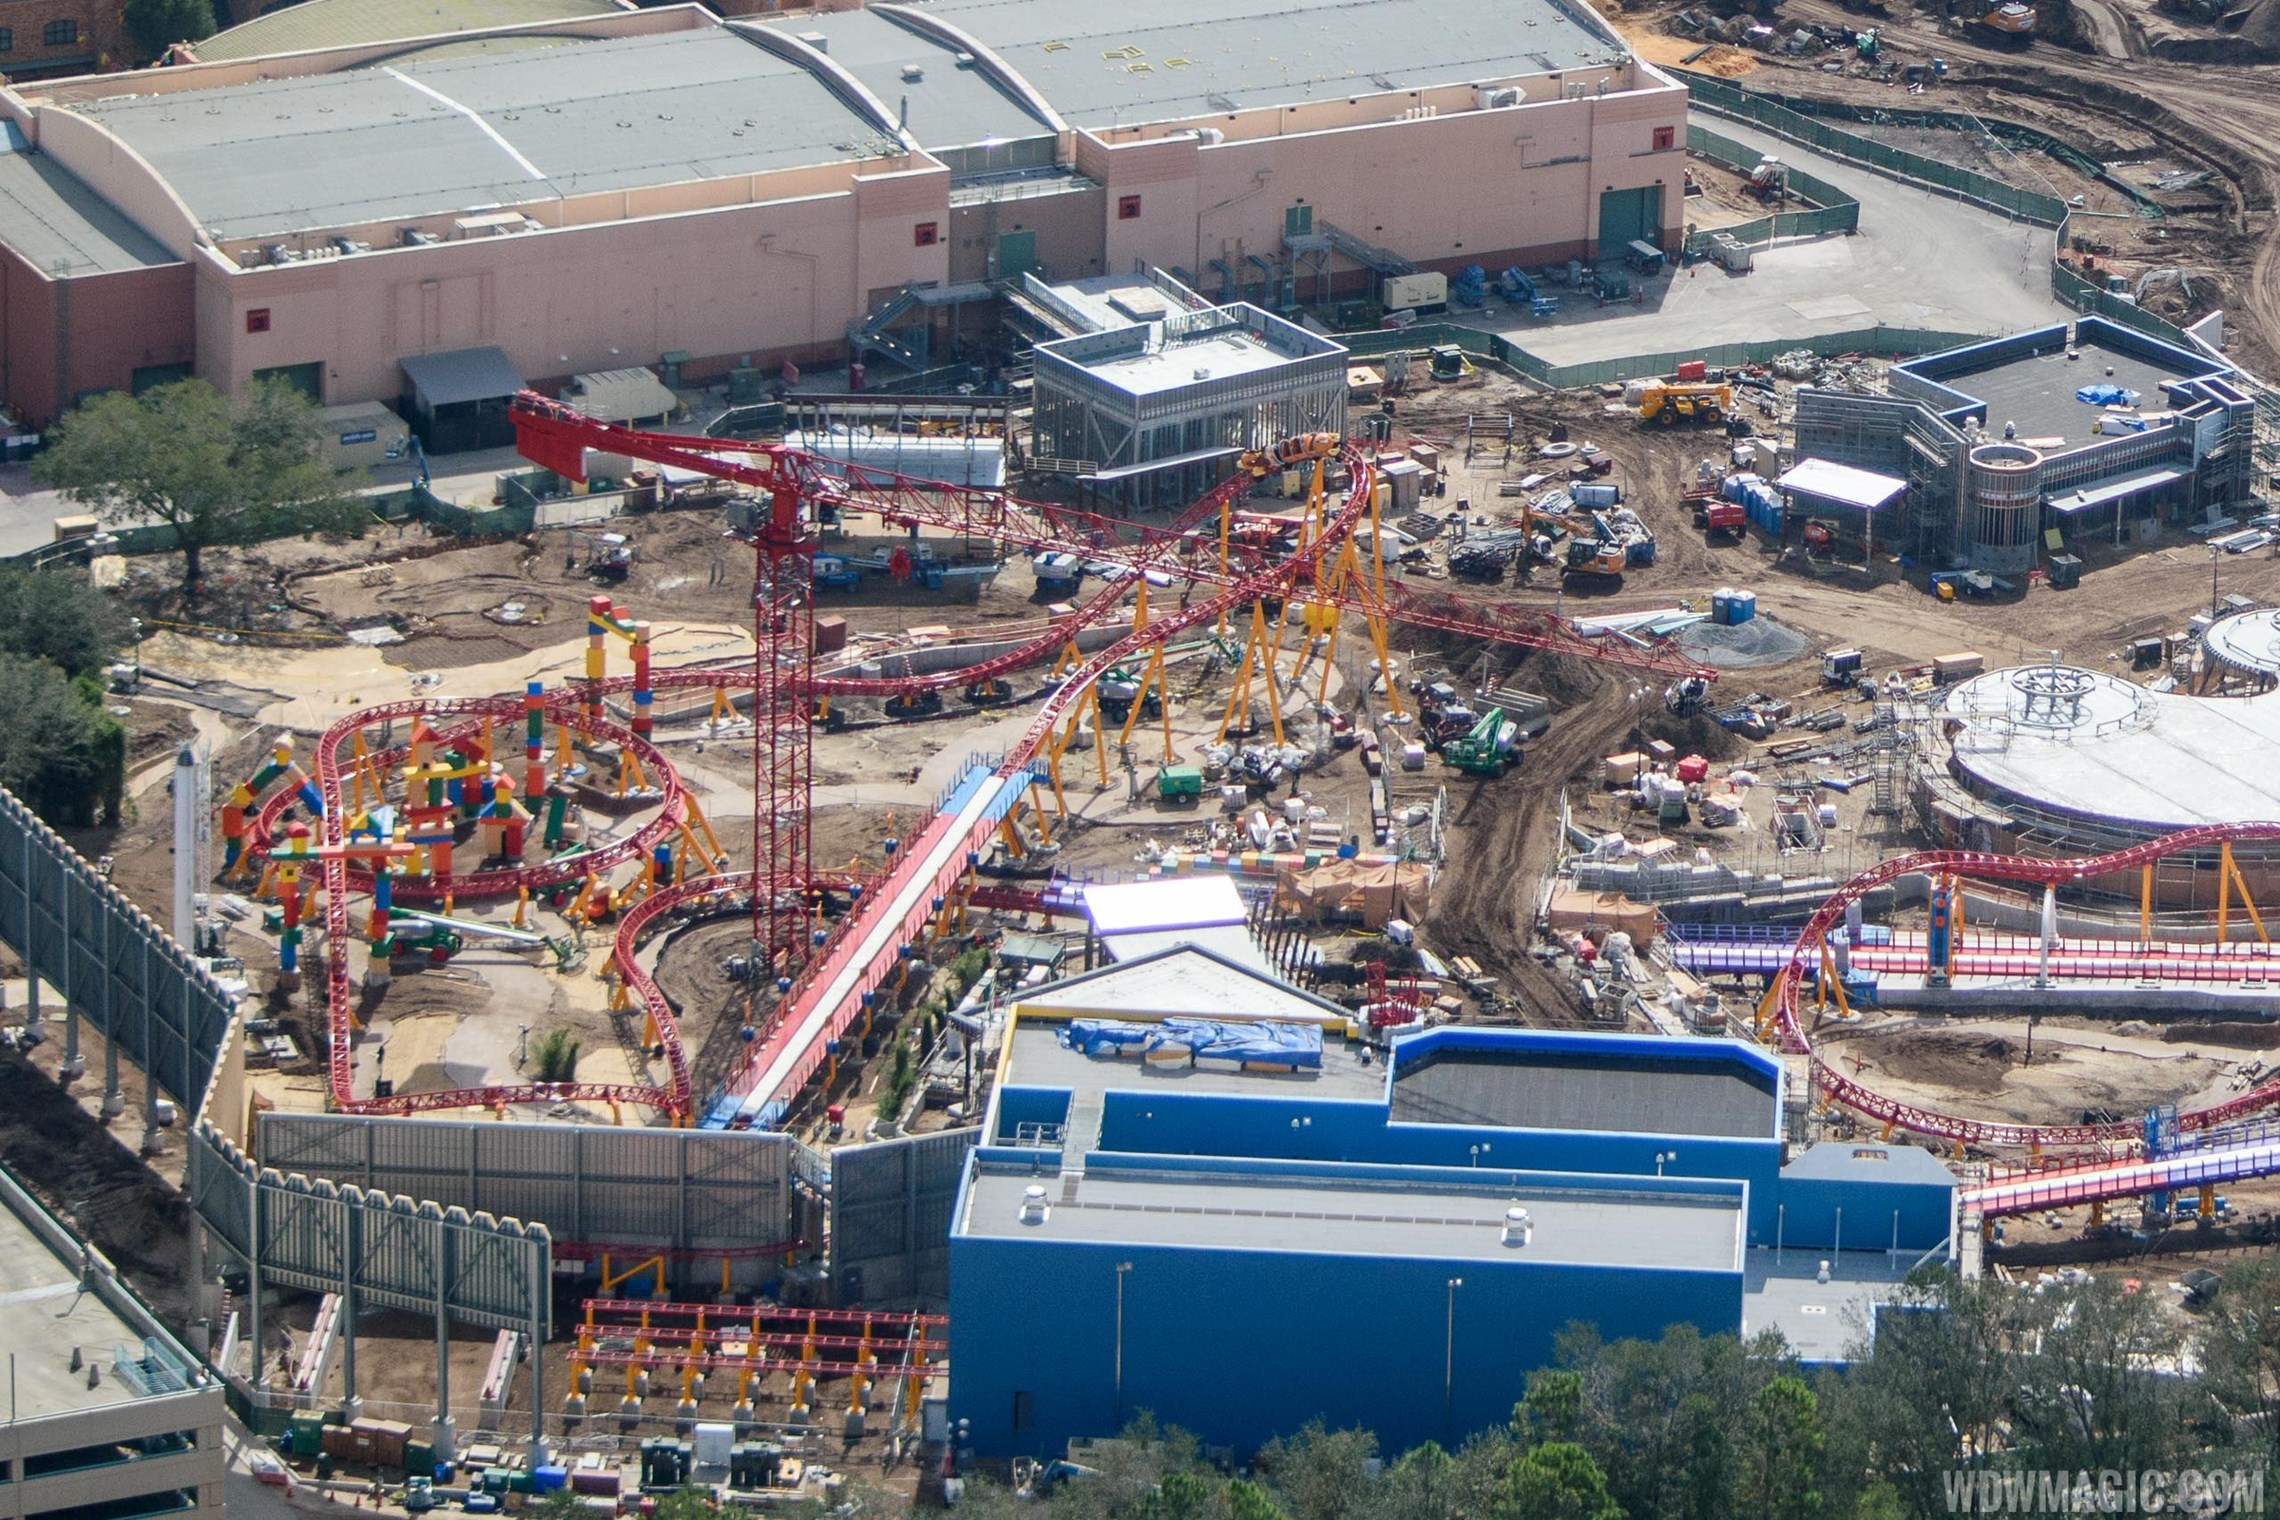 Toy Story Land construction aerial views Photo 4 of 9 : Toy Story LandFull31234 from www.wdwmagic.com size 2280 x 1520 jpeg 422kB